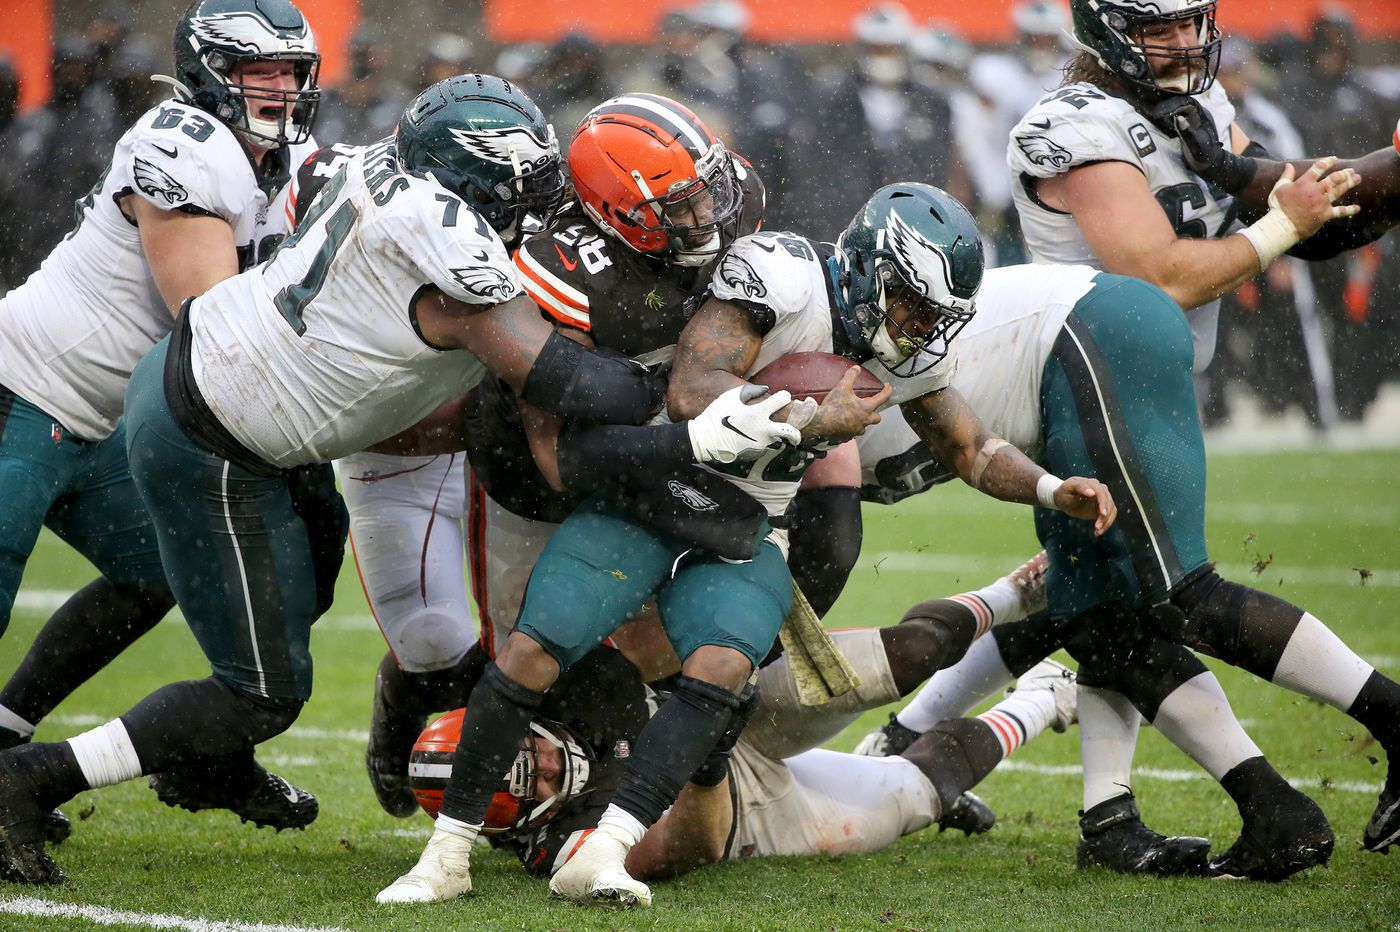 Eagles-Browns Up-Down Drill: Jason Peters has another brutal day